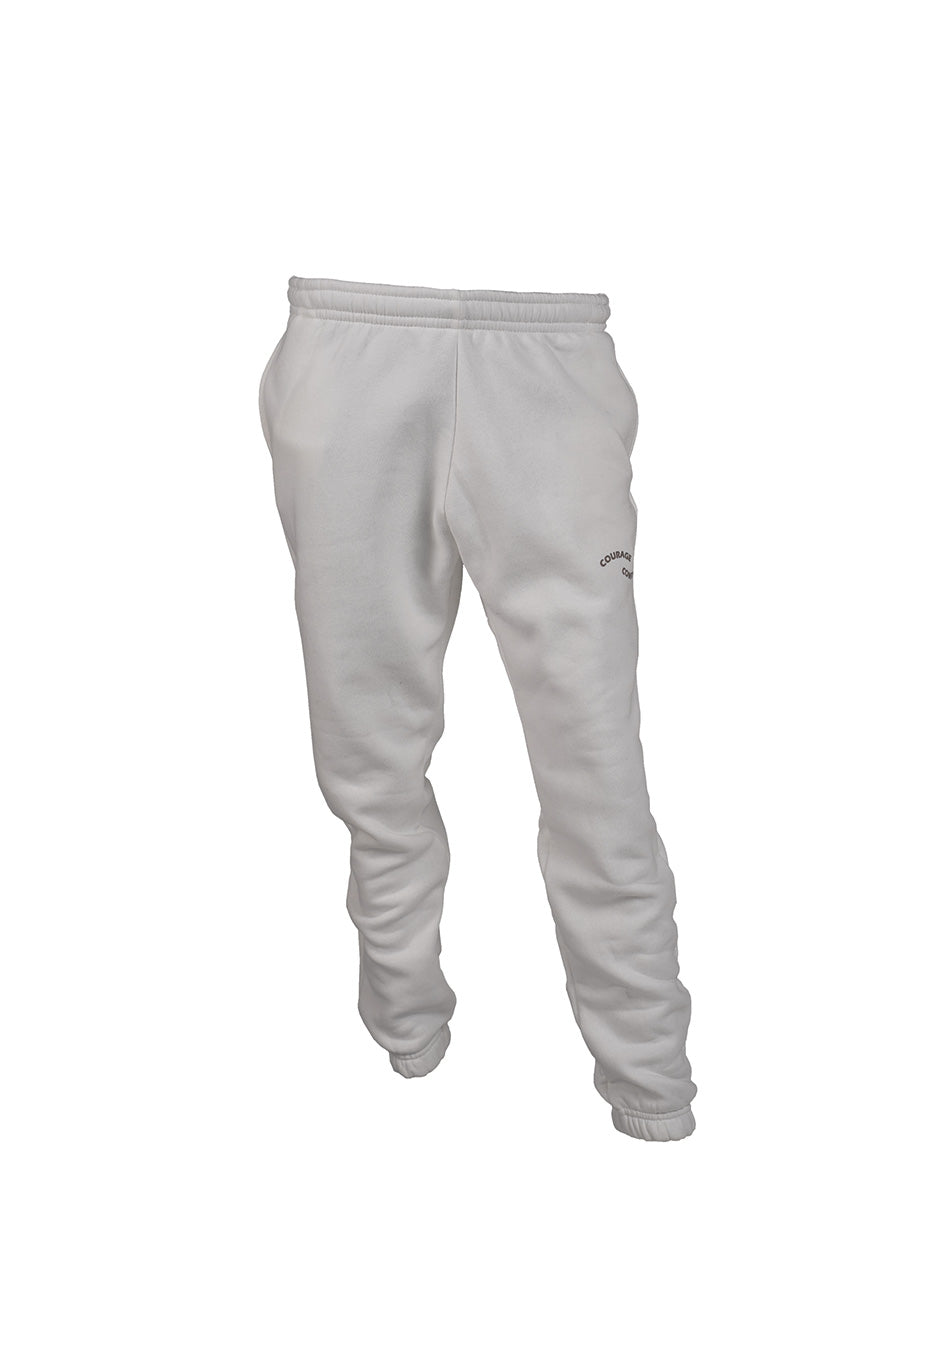 FULL MOON Sweatpants - LH x COHL'S